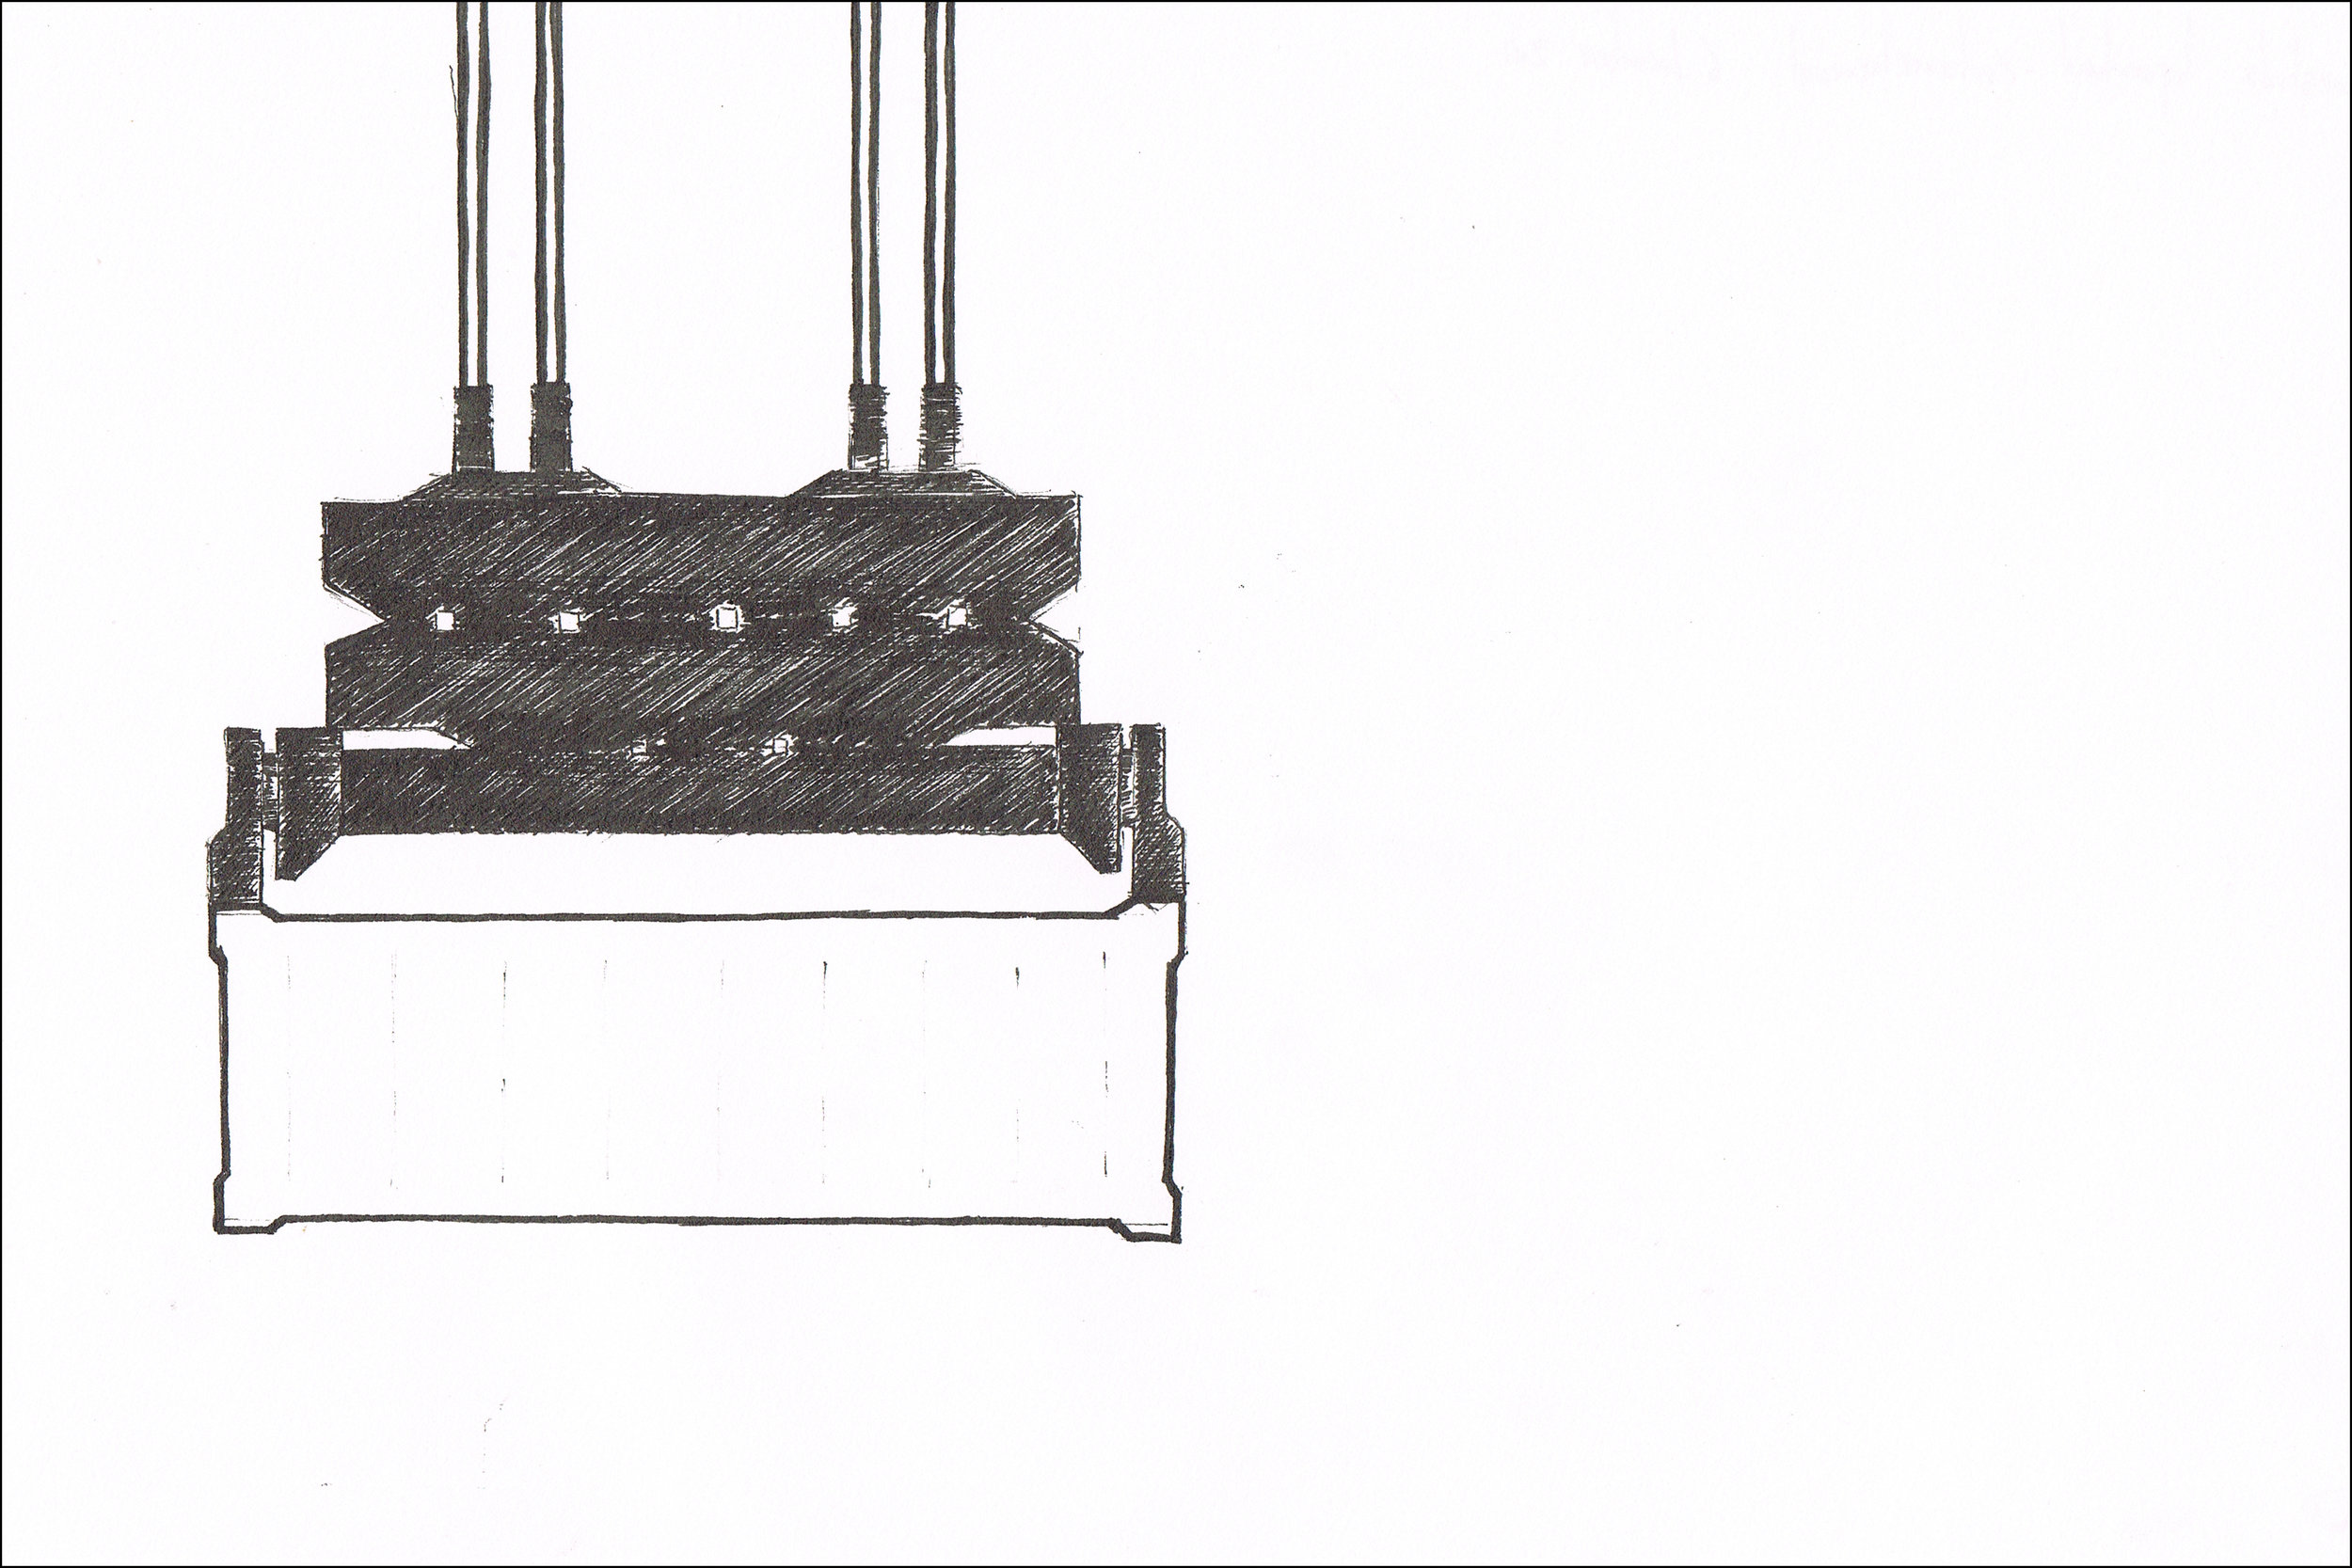 Two designs for a Clamp